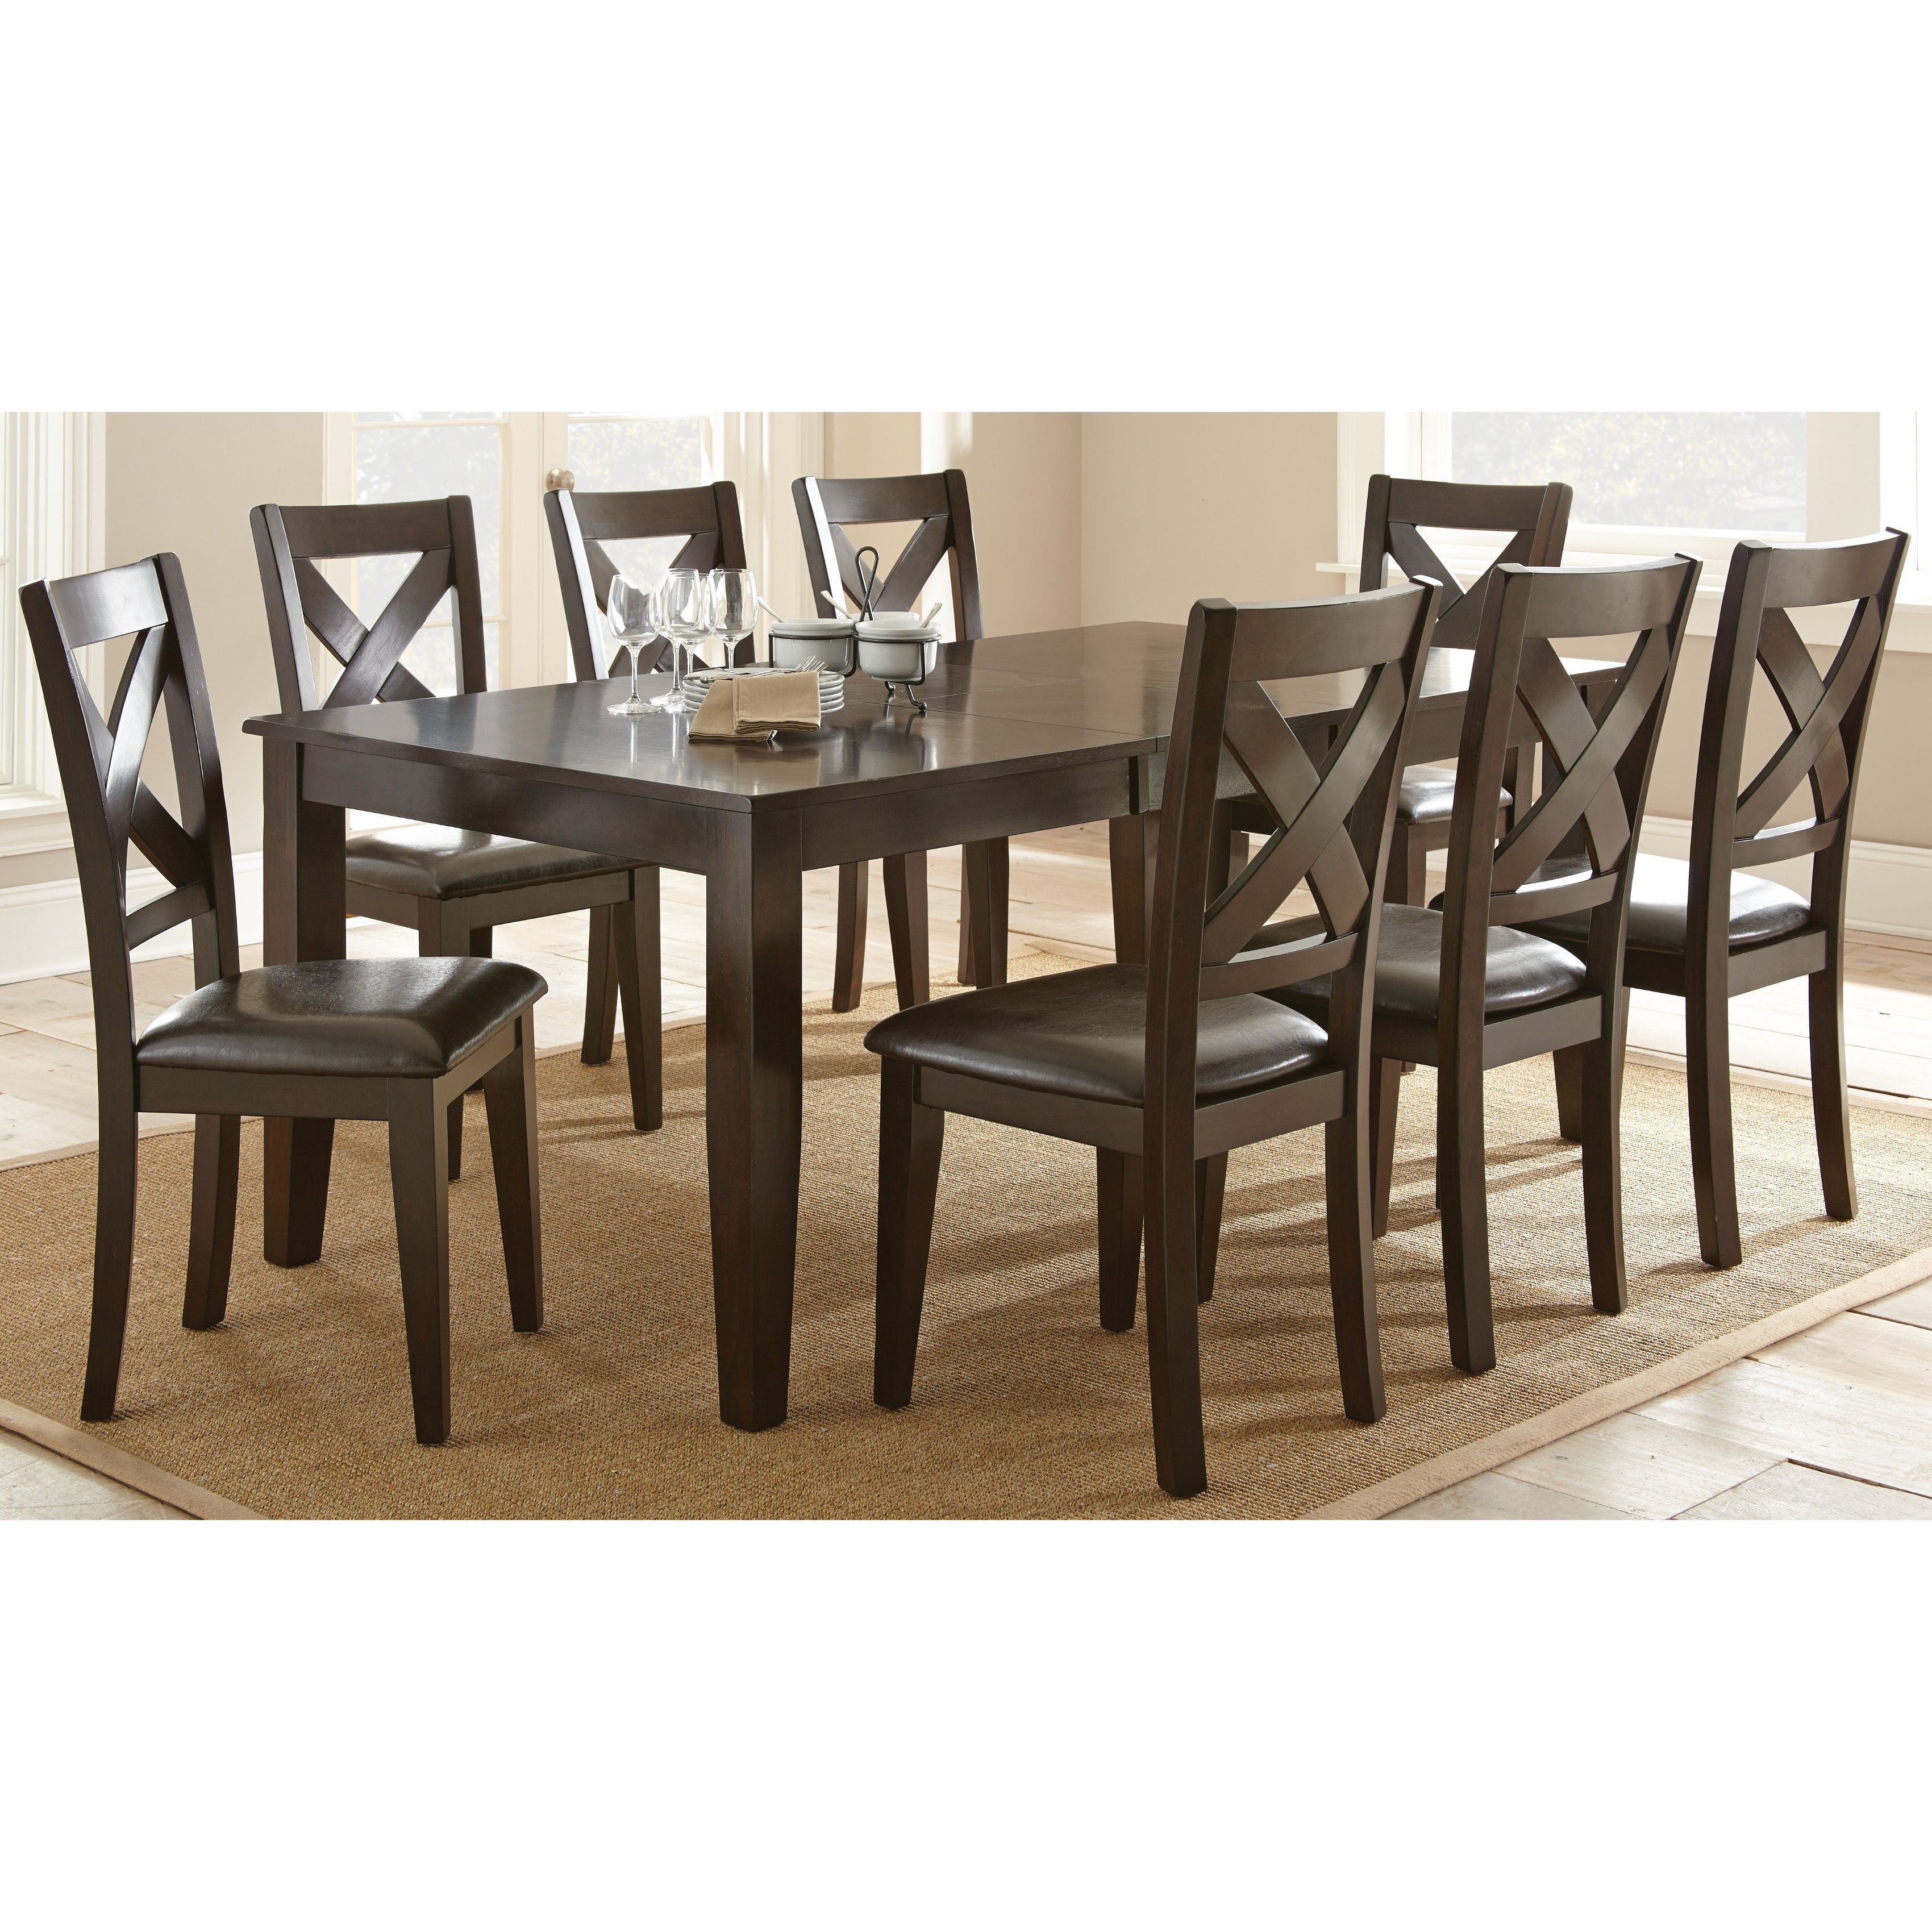 The Dark Espresso Finish Of Copley Dining Set Creates A Casual Style That Will Complement Any Decor Dine Comfortably In X Back Chairs With